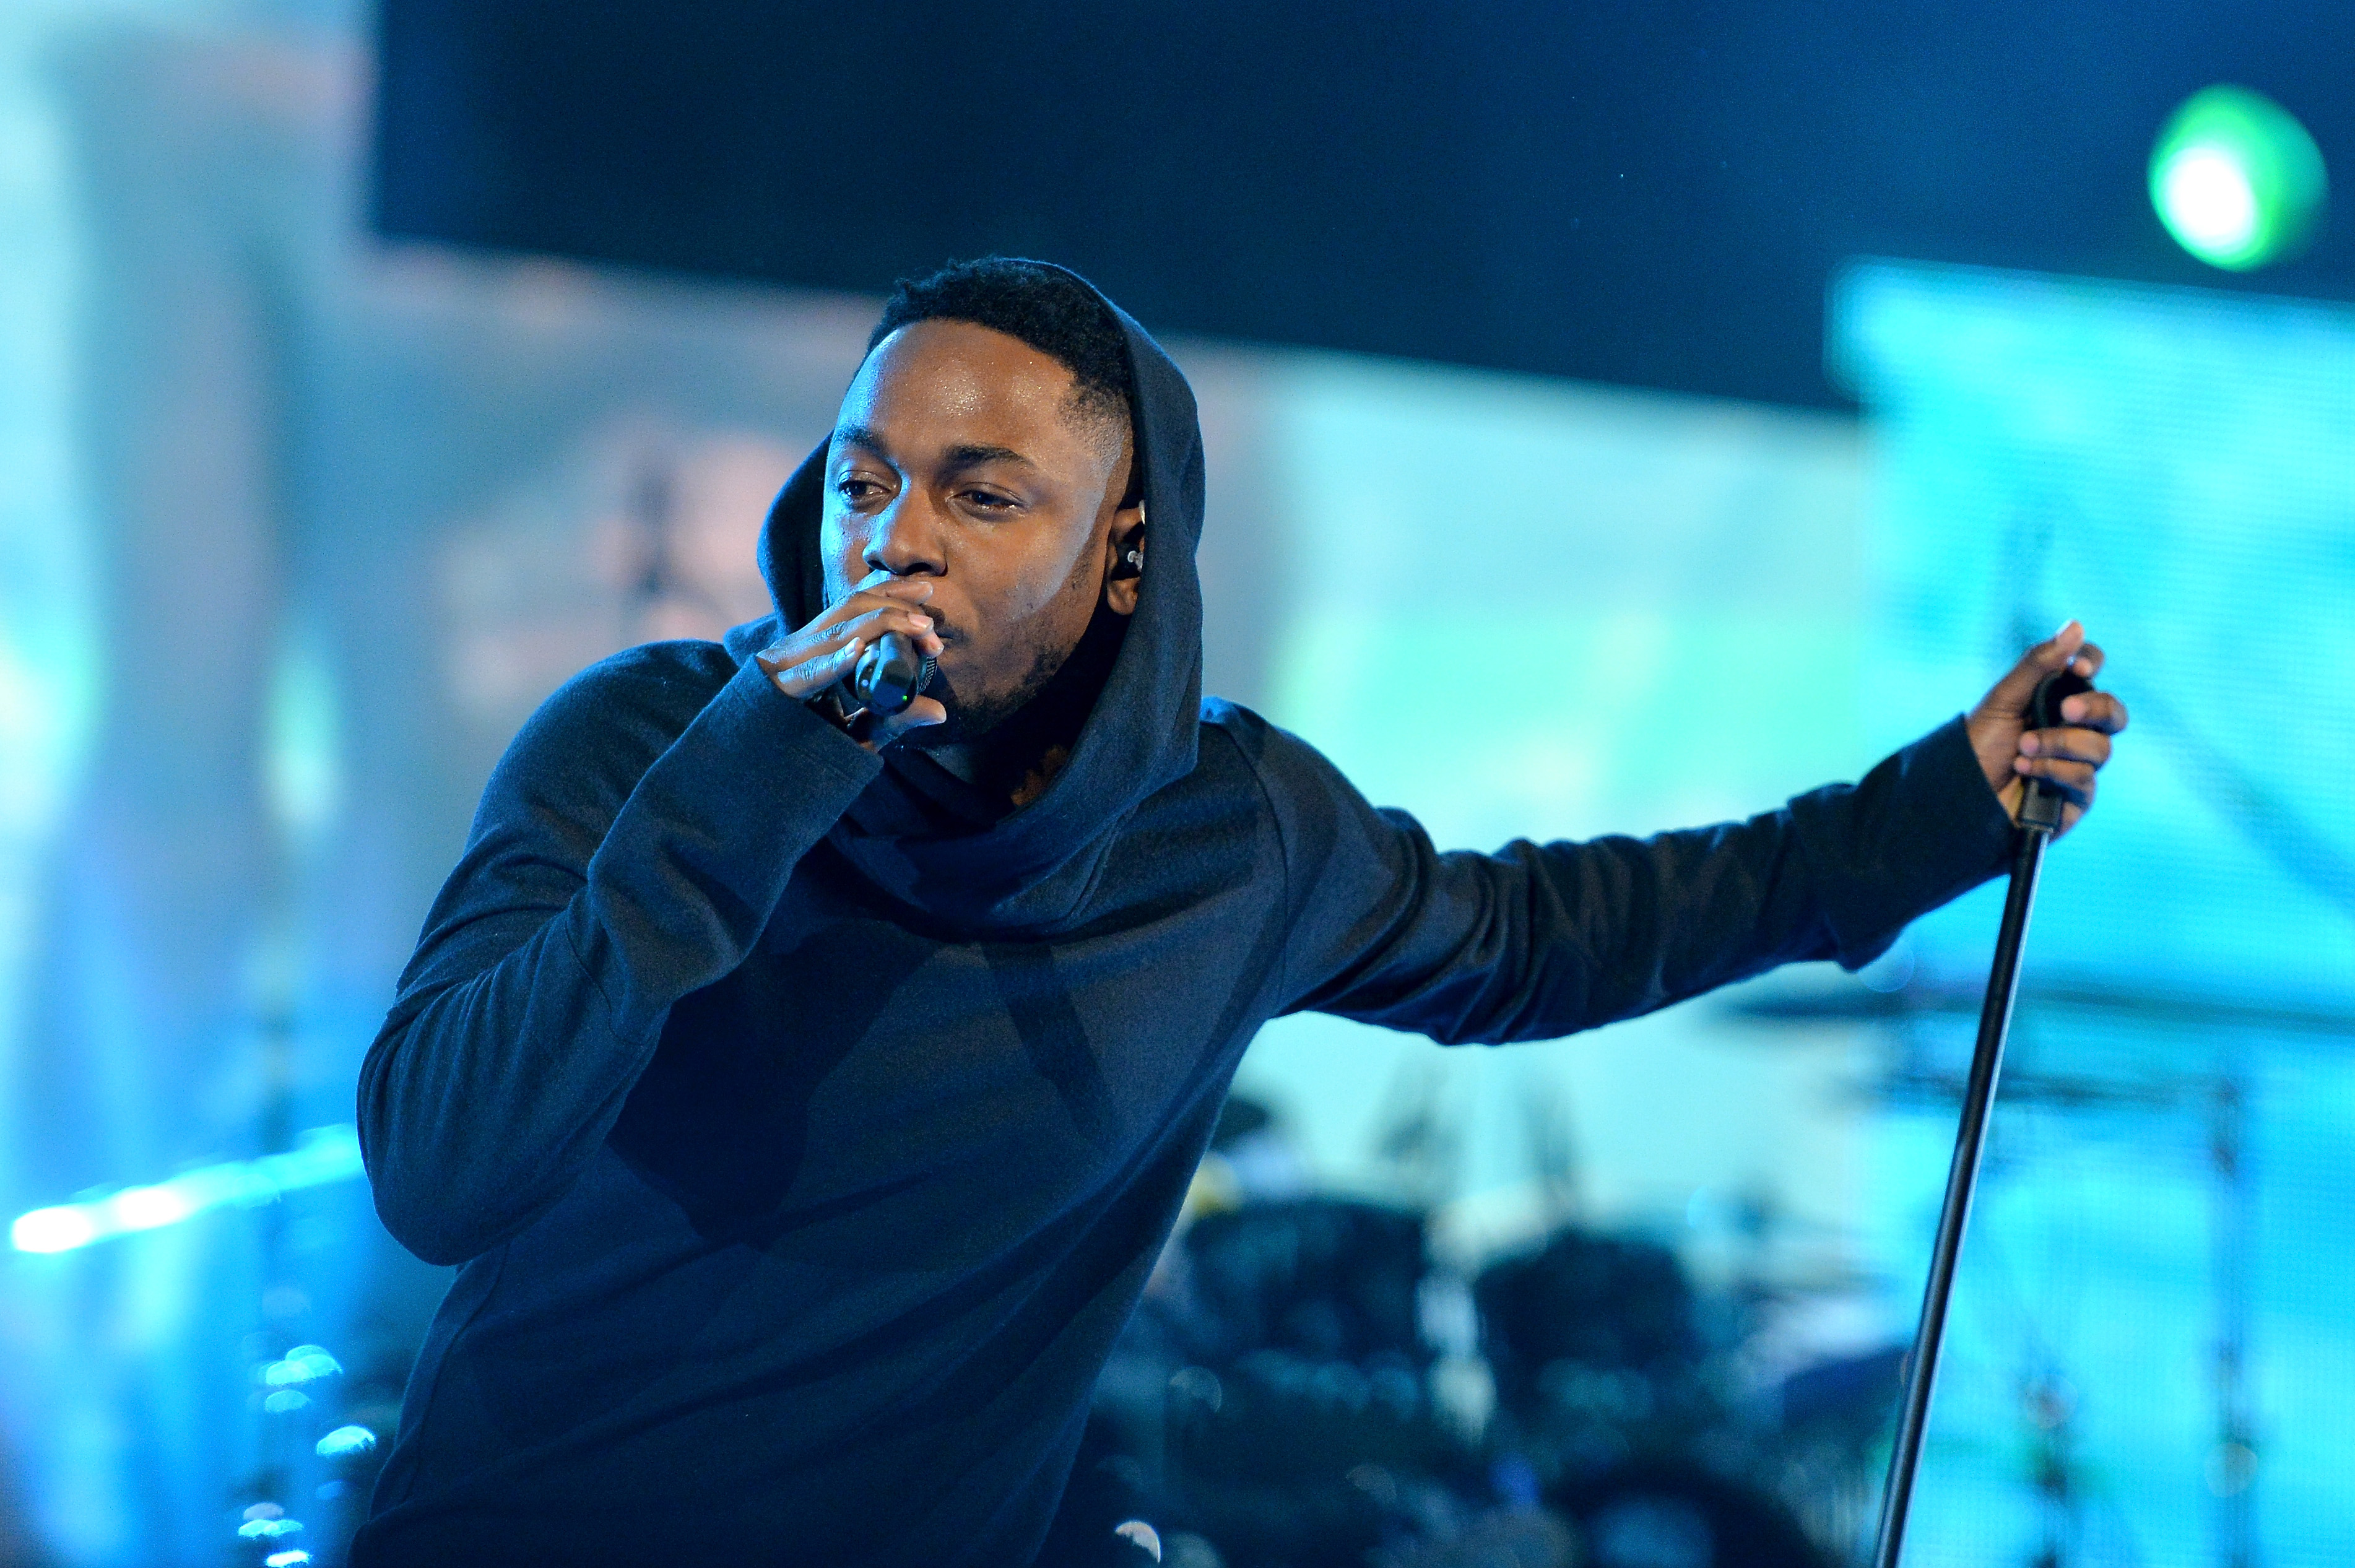 Musician Kendrick Lamar performs onstage at the State Farm All-Star Saturday Night during the NBA All-Star Weekend 2014 at The Smoothie King Center on February 15, 2014 in New Orleans.